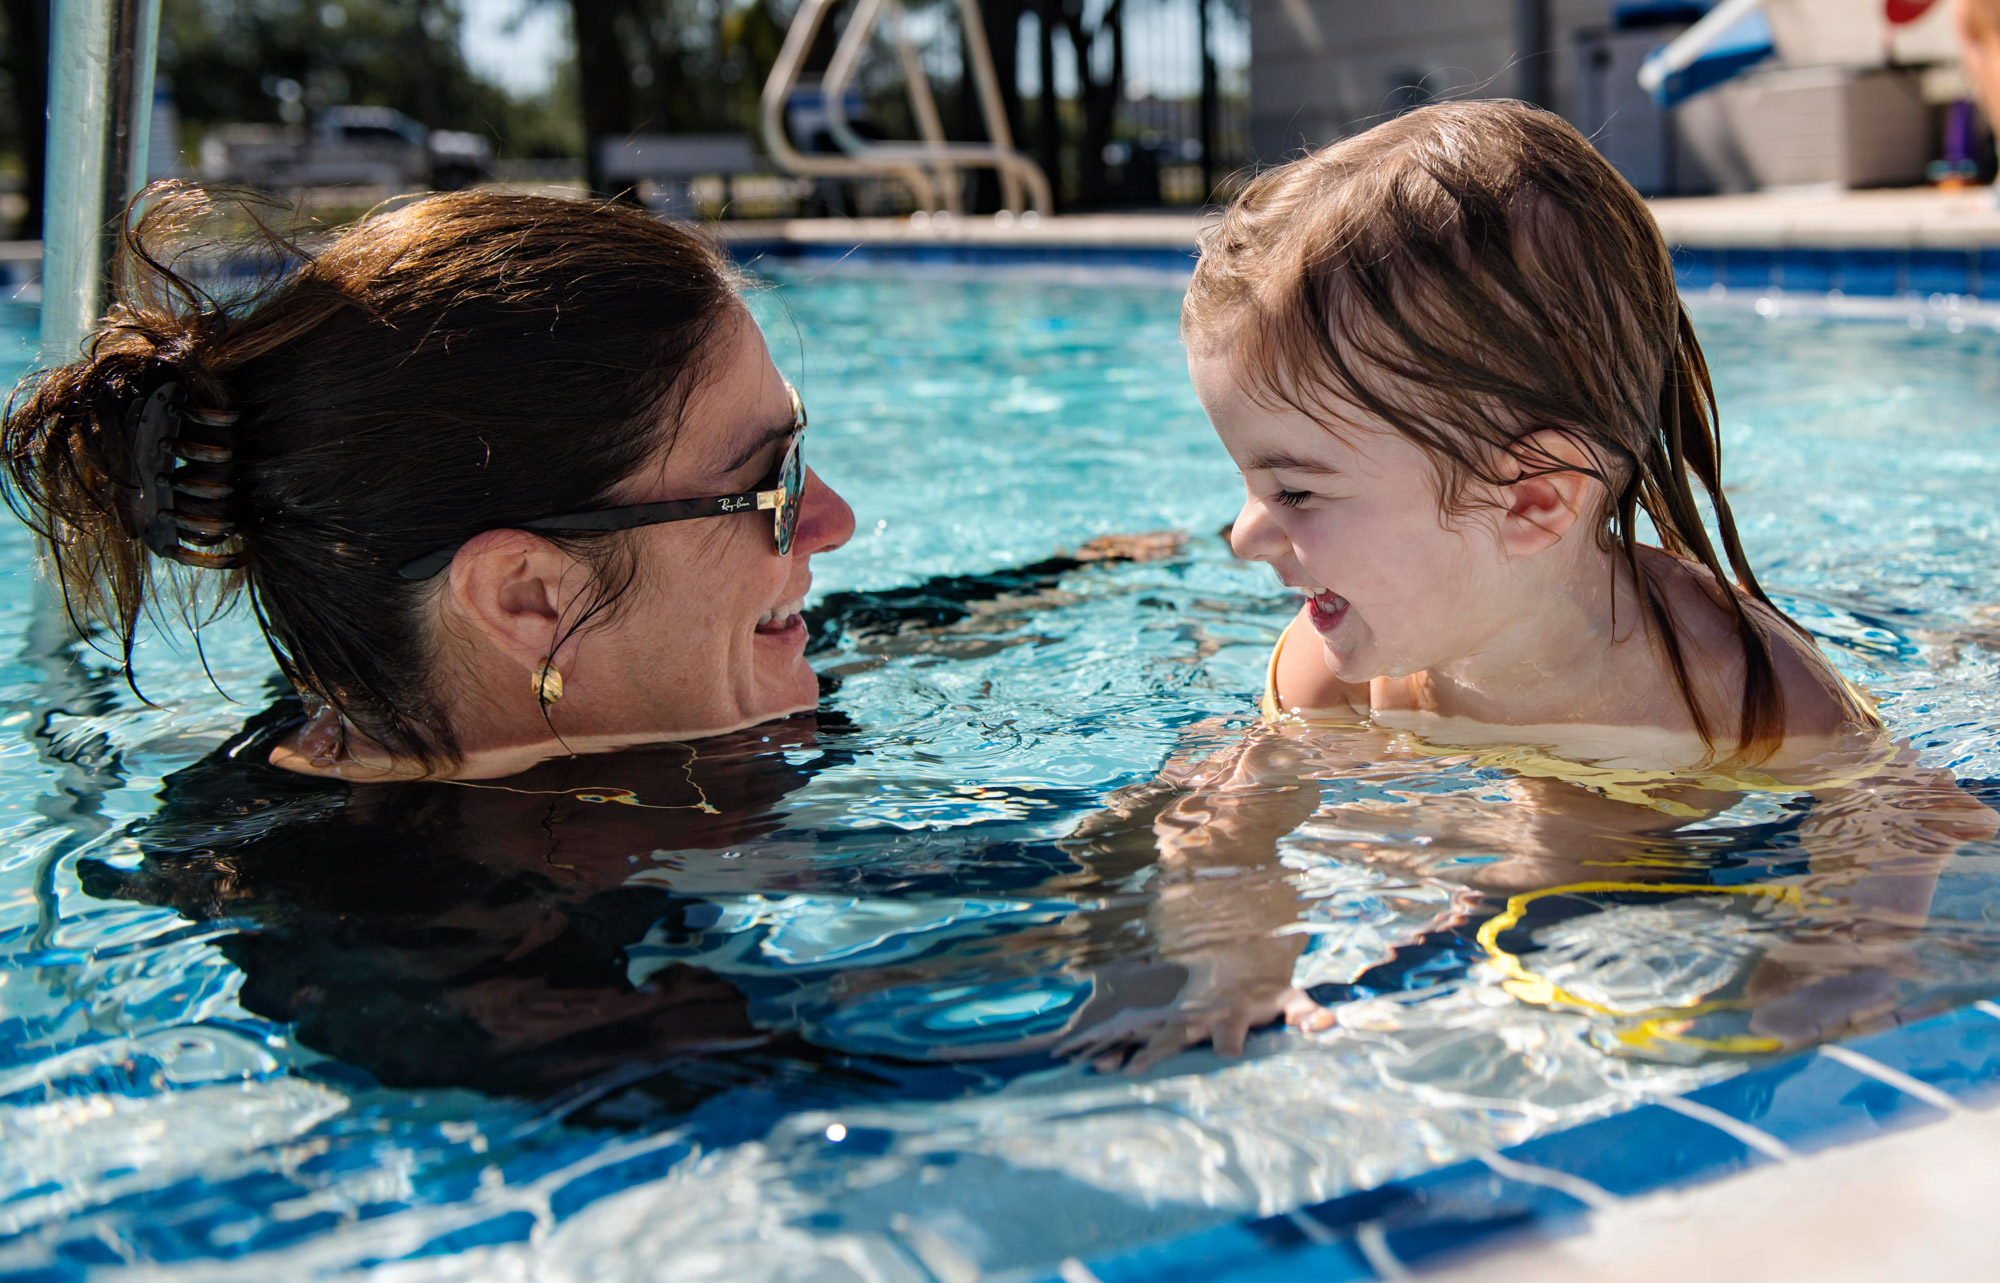 Woman teaching a young girl how to swim